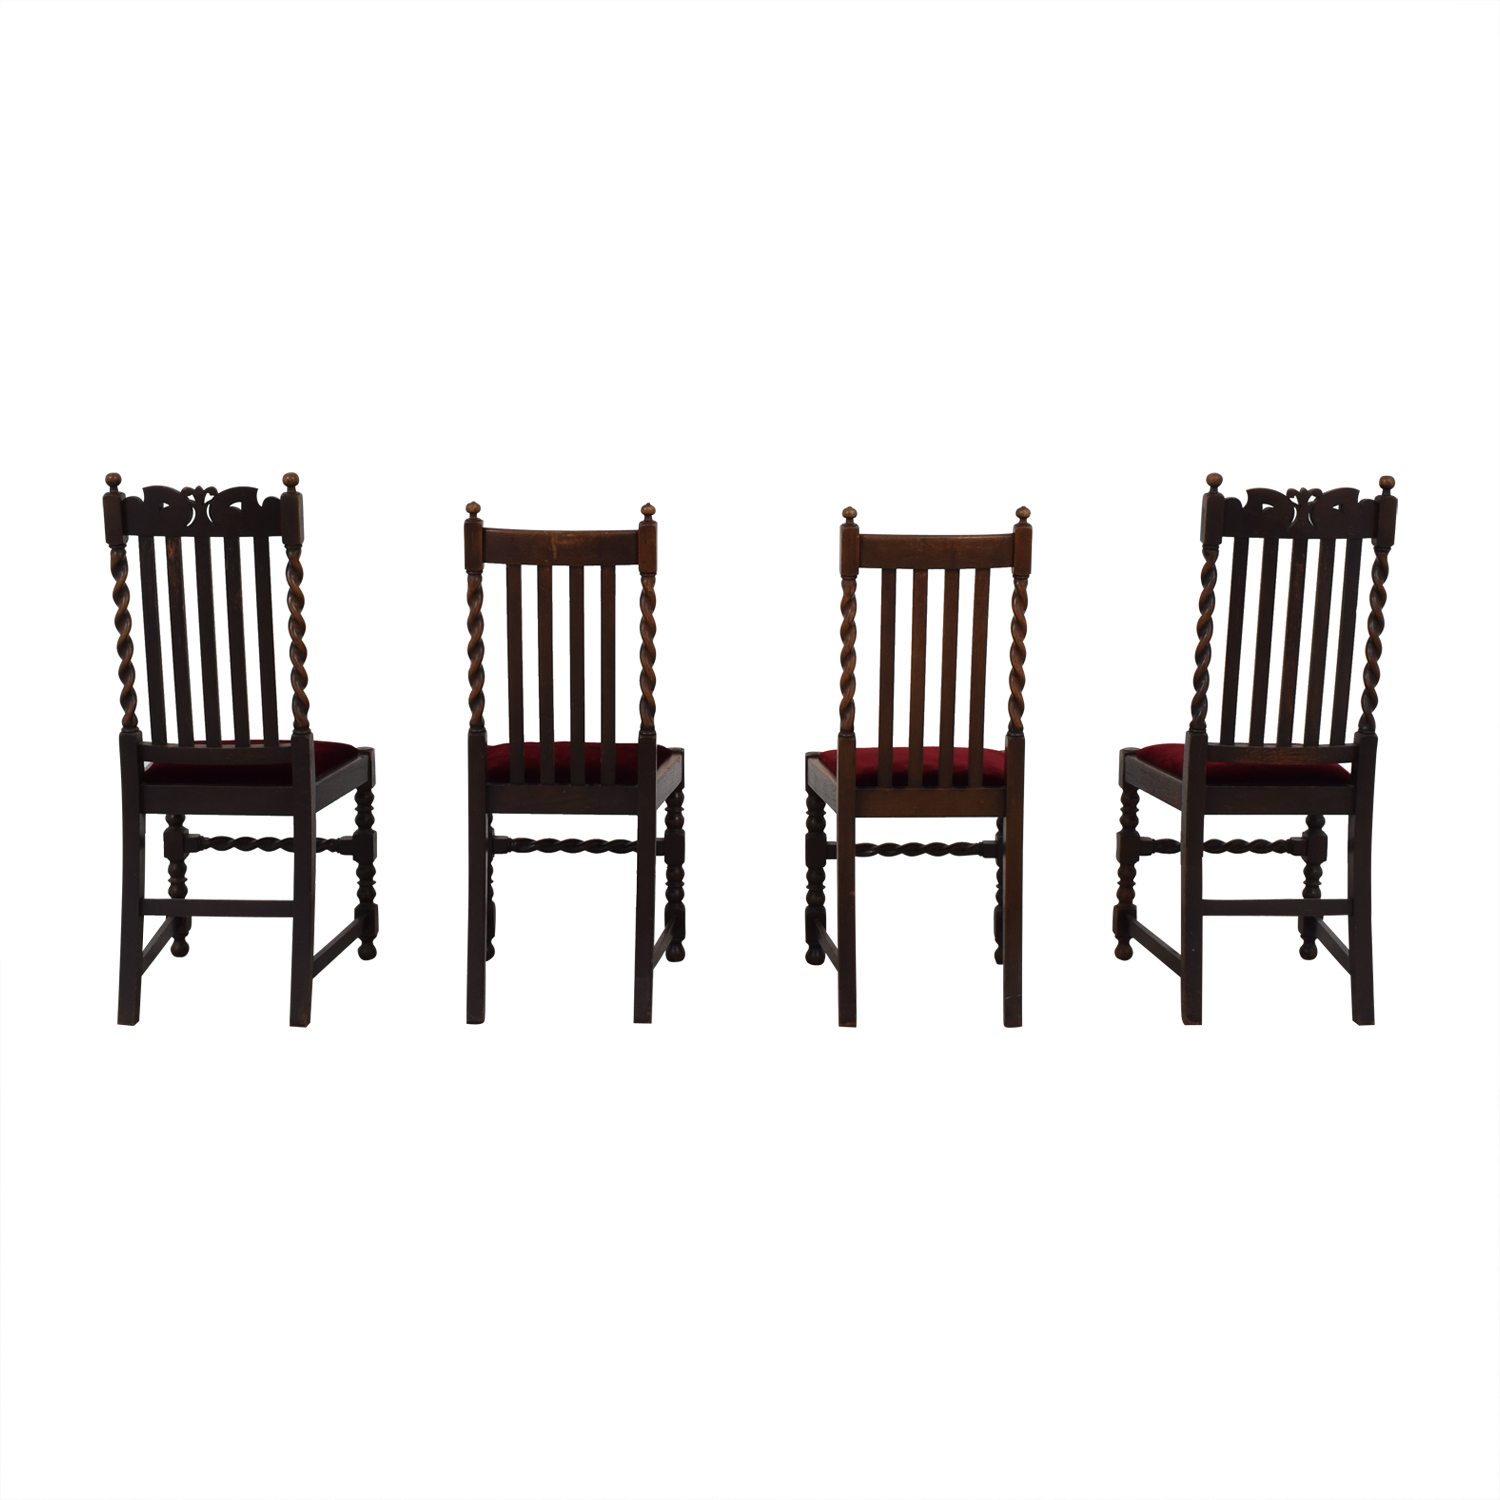 Jacobian Barley Twist Chairs